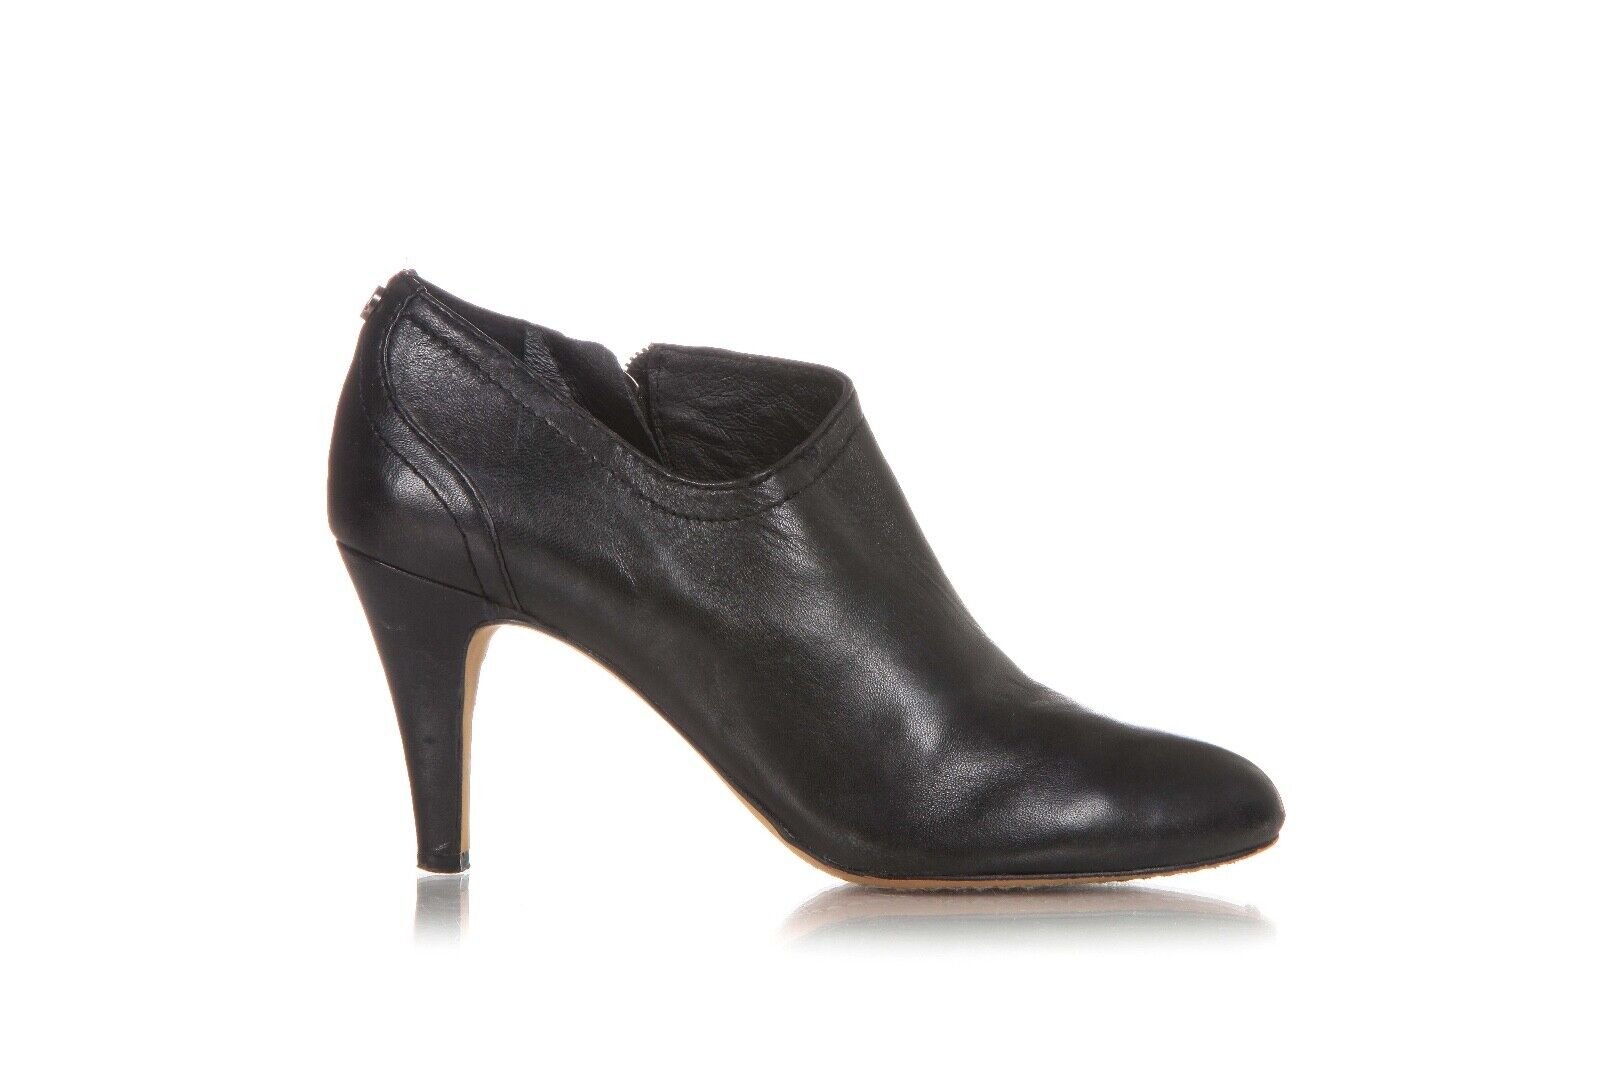 VINCE CAMUTO Ankle Booties US 7 EU 37 Leather Black Heels Round Toe Zip Boots